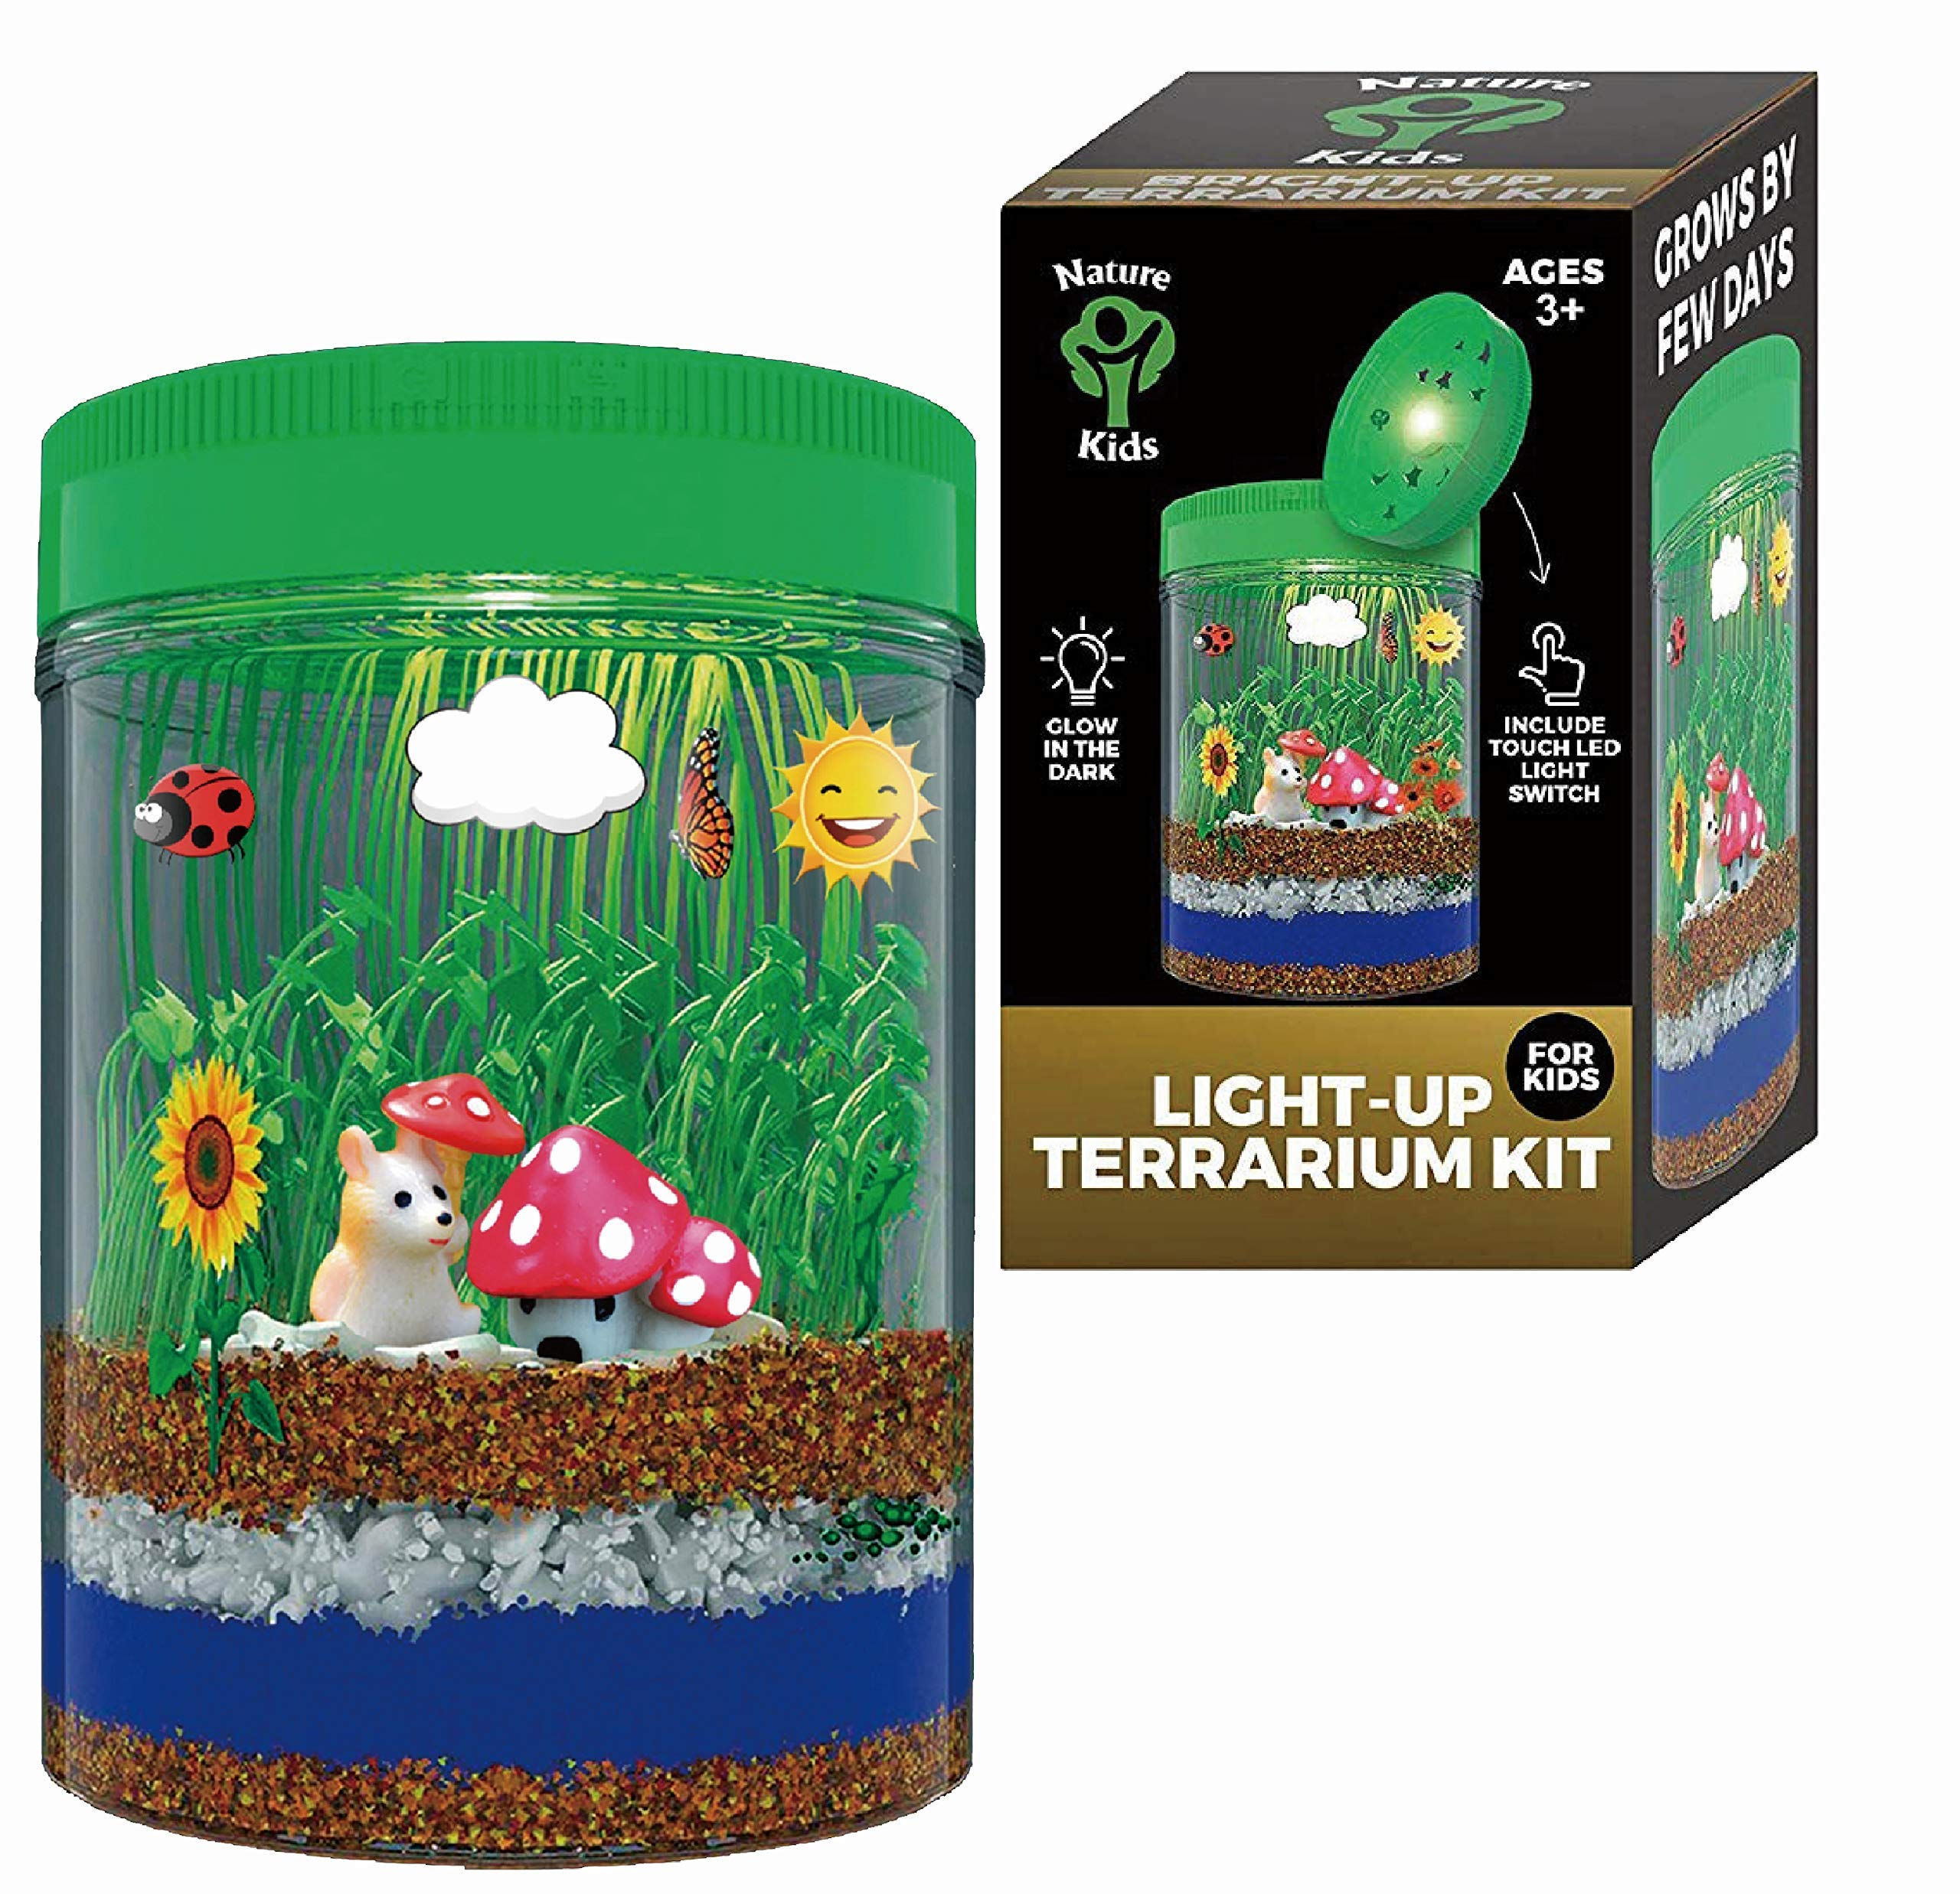 Terrarium Kit for Kids LED Light on Lid - Crafts & Arts Create Customized Mini Garden for Children - Science Kit Gifts for Boys & Girls - Kids Birthday Gifts for Age 3-12 Year Old - Kids Toys by 1ELEGANT